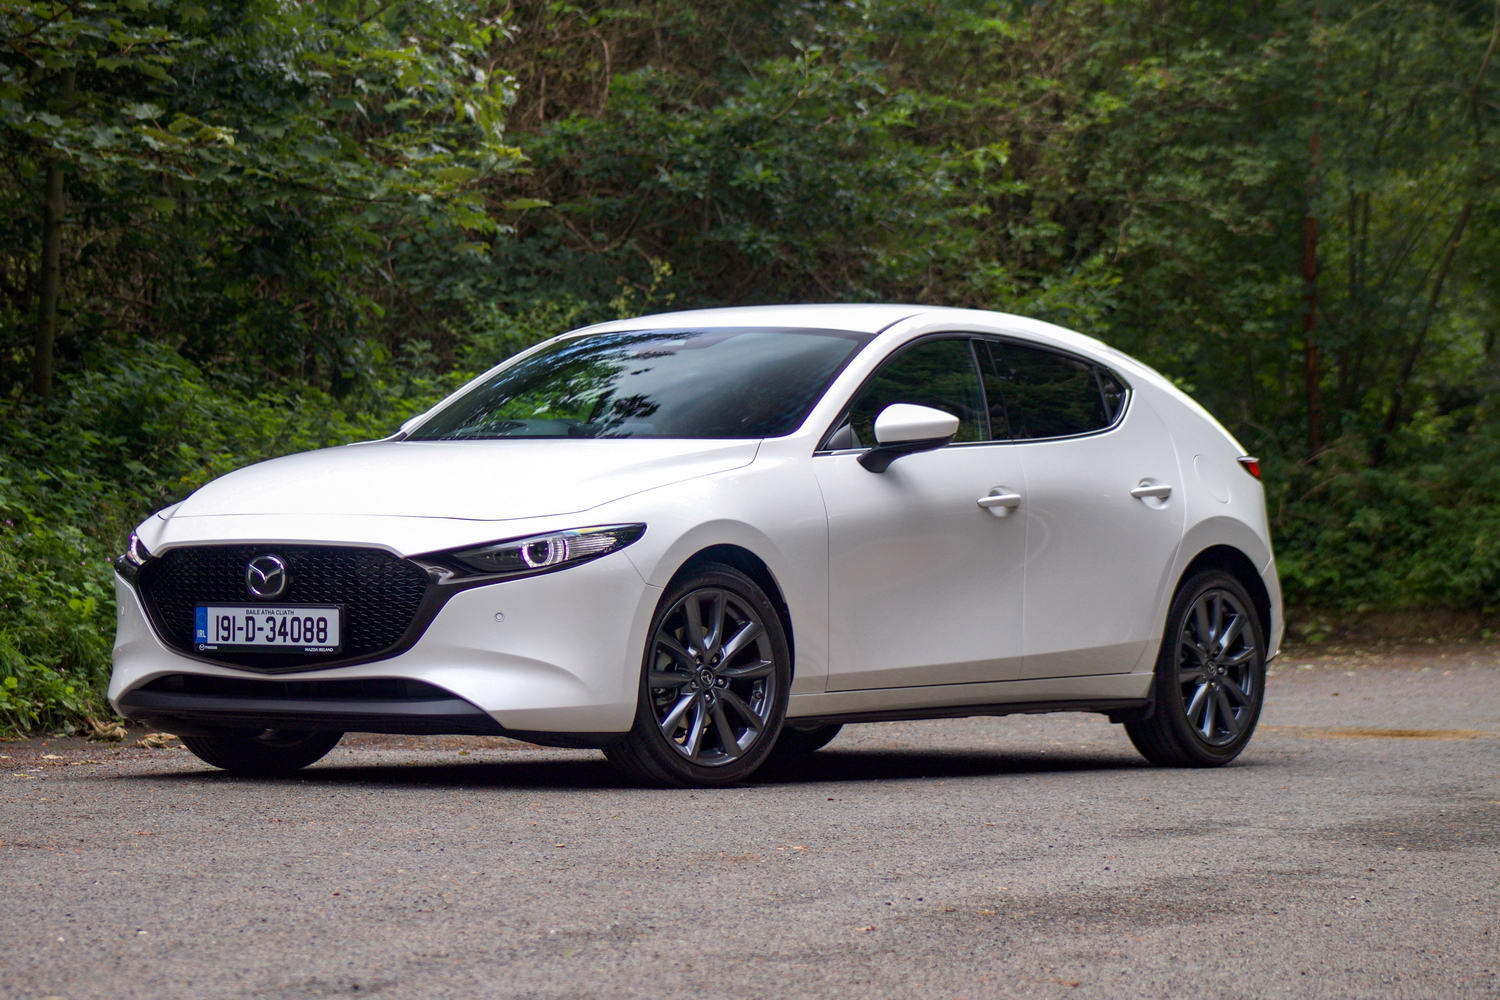 Car Reviews | Mazda 3 2.0 SkyActiv-G M-Hybrid (2020) | CompleteCar.ie